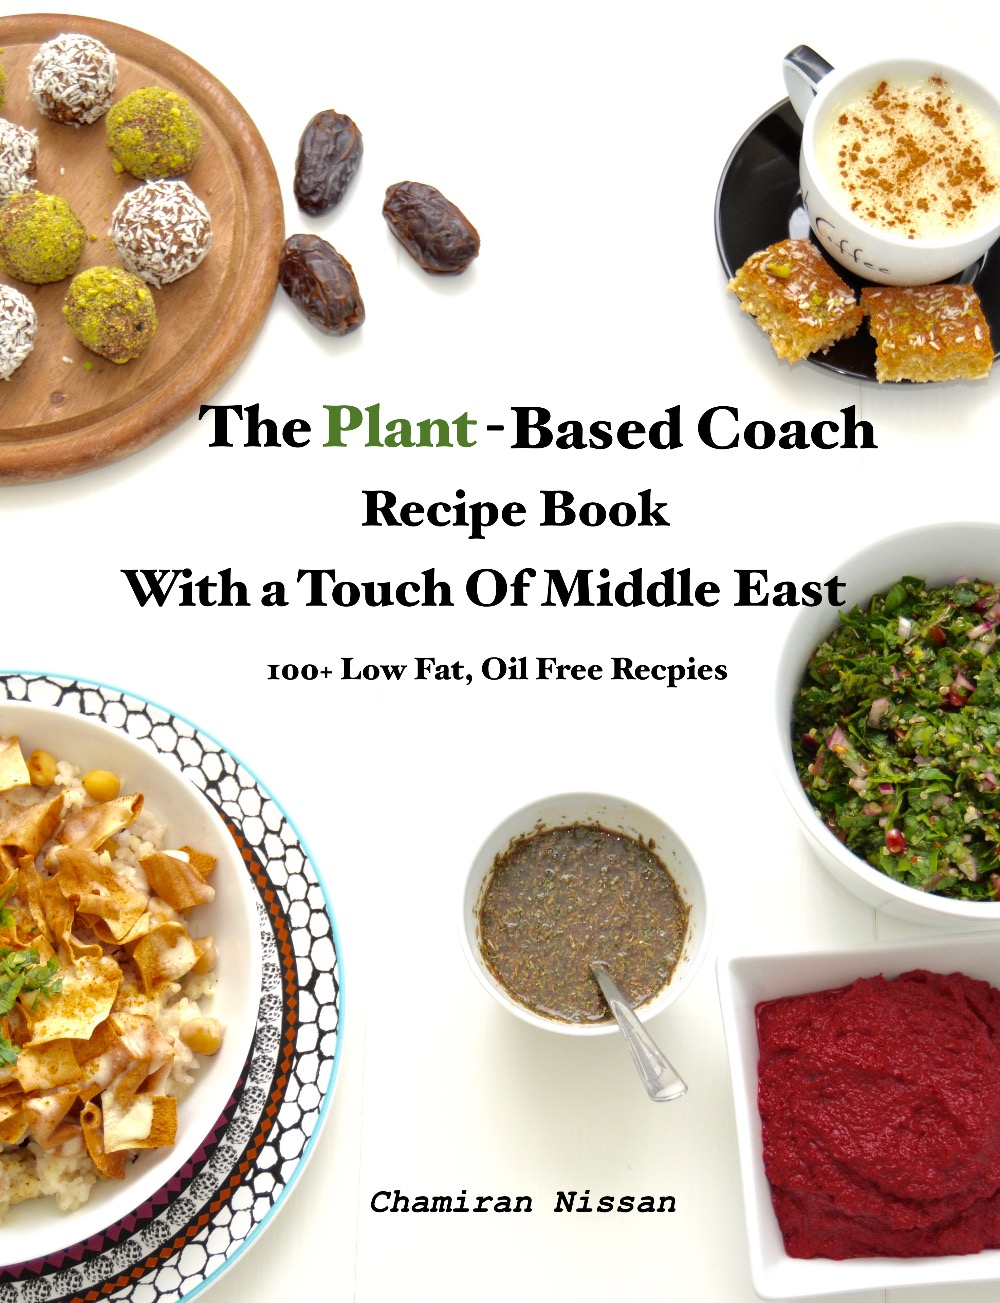 The Plant-Based Coach Recipe Book With a Touch Of Middle East